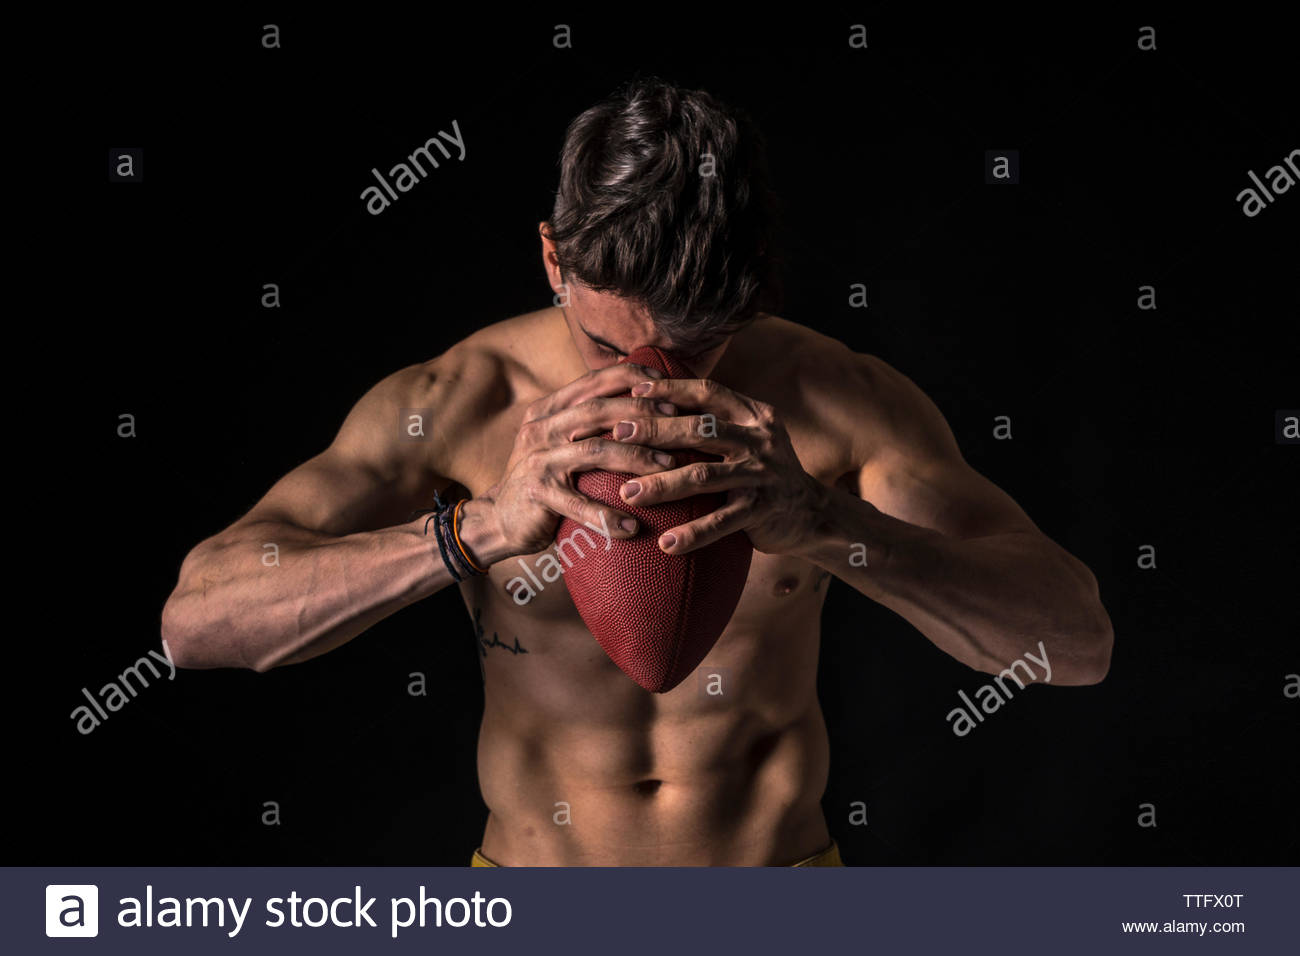 American football player with ball, abs, isolated  background - Stock Image